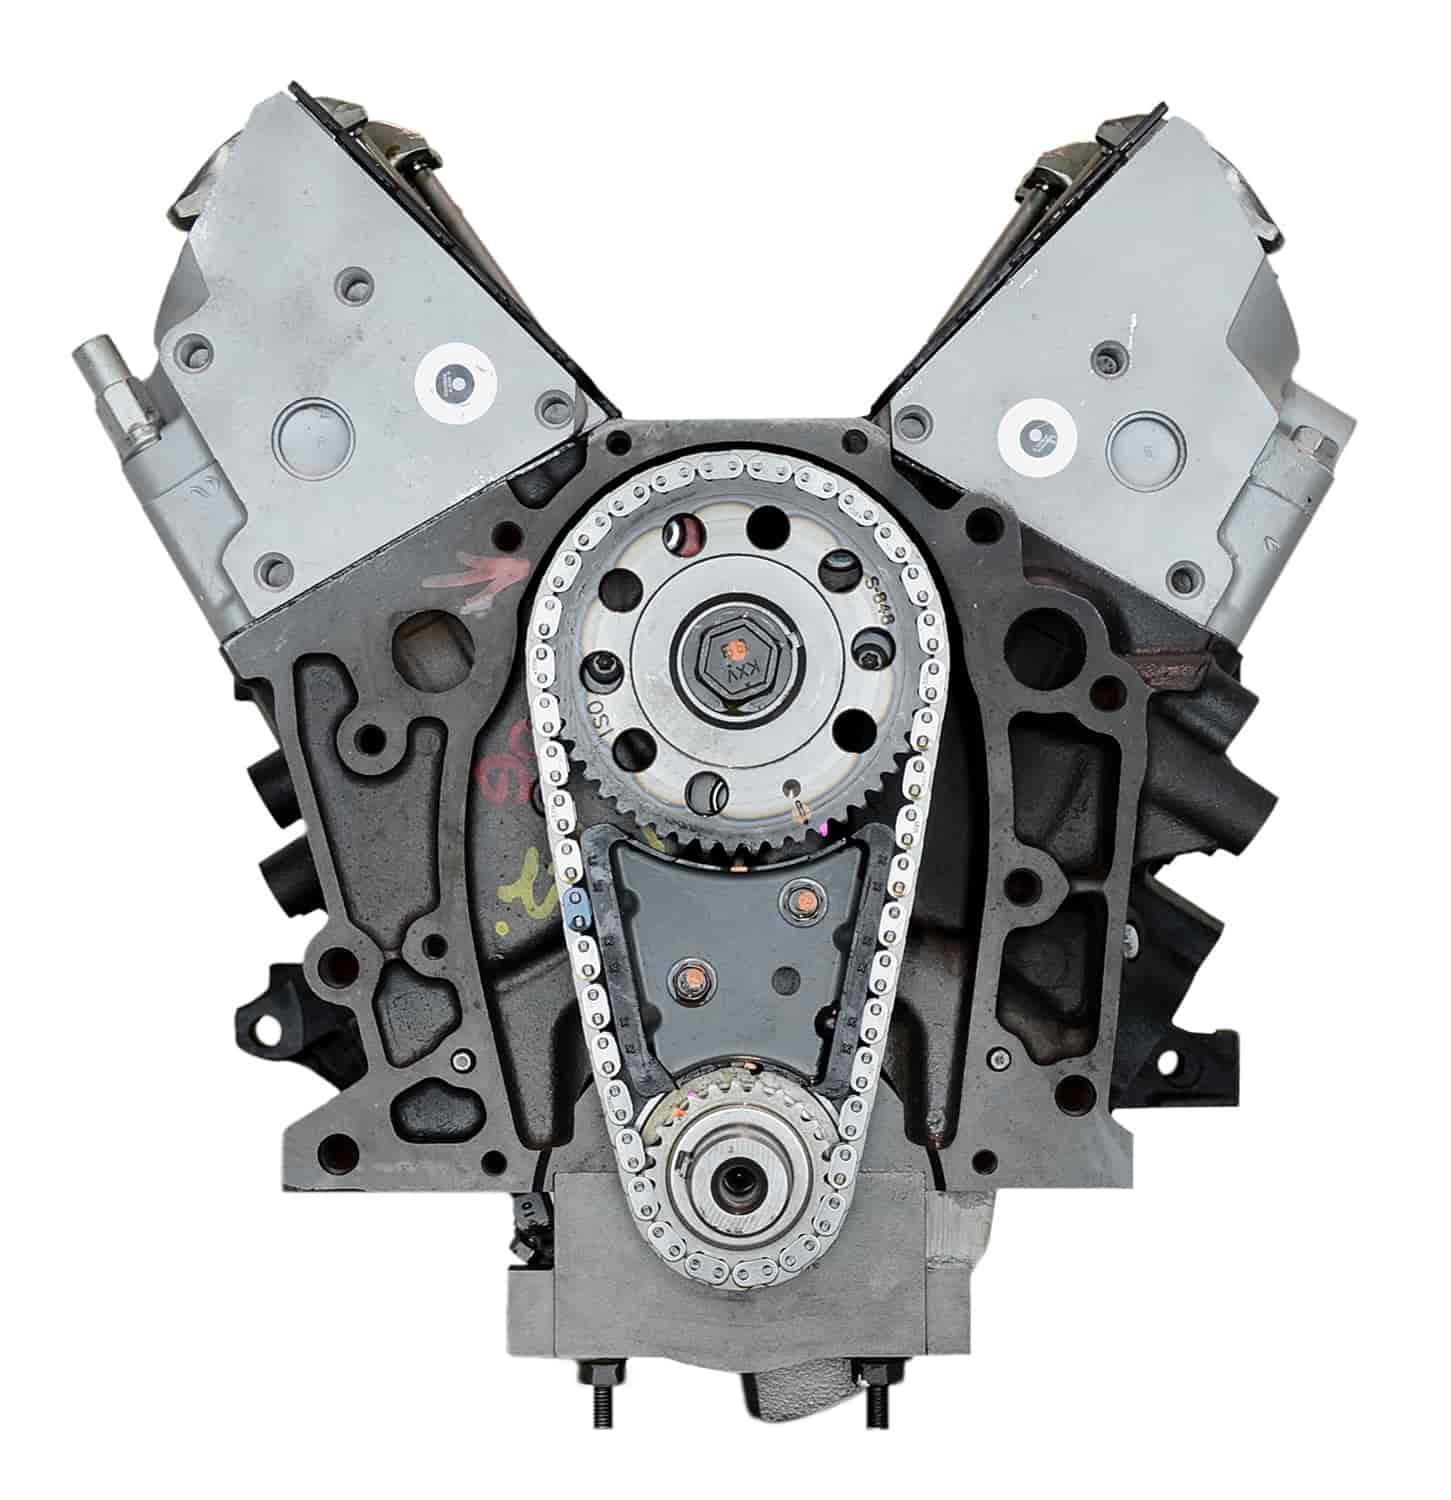 2005 chevy equinox suspension diagram 4age alternator wiring atk engines dcwh remanufactured crate engine for